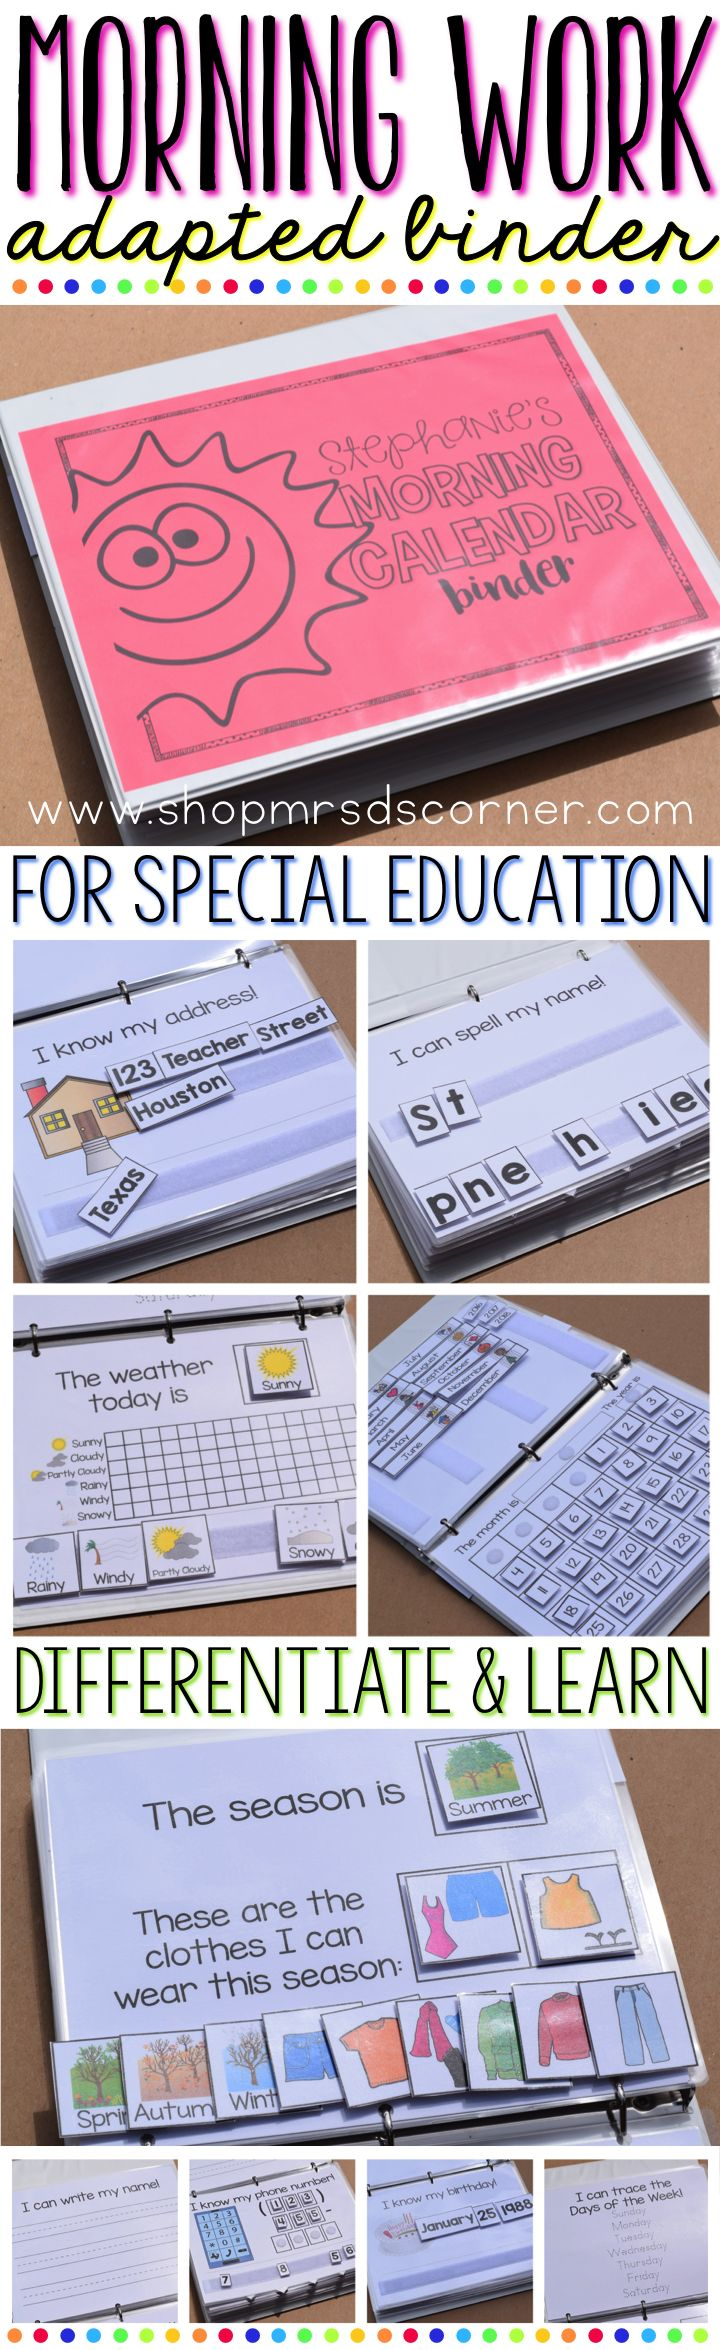 Transform your morning routine with editable, adapted calendar binders. Differentiated and ready for your students! Practice personal information and basic skills all in one place. Students manipulate Velcro pieces to show what they know. Only at Mrs. D's Corner. www.shopmrsdscorner.com